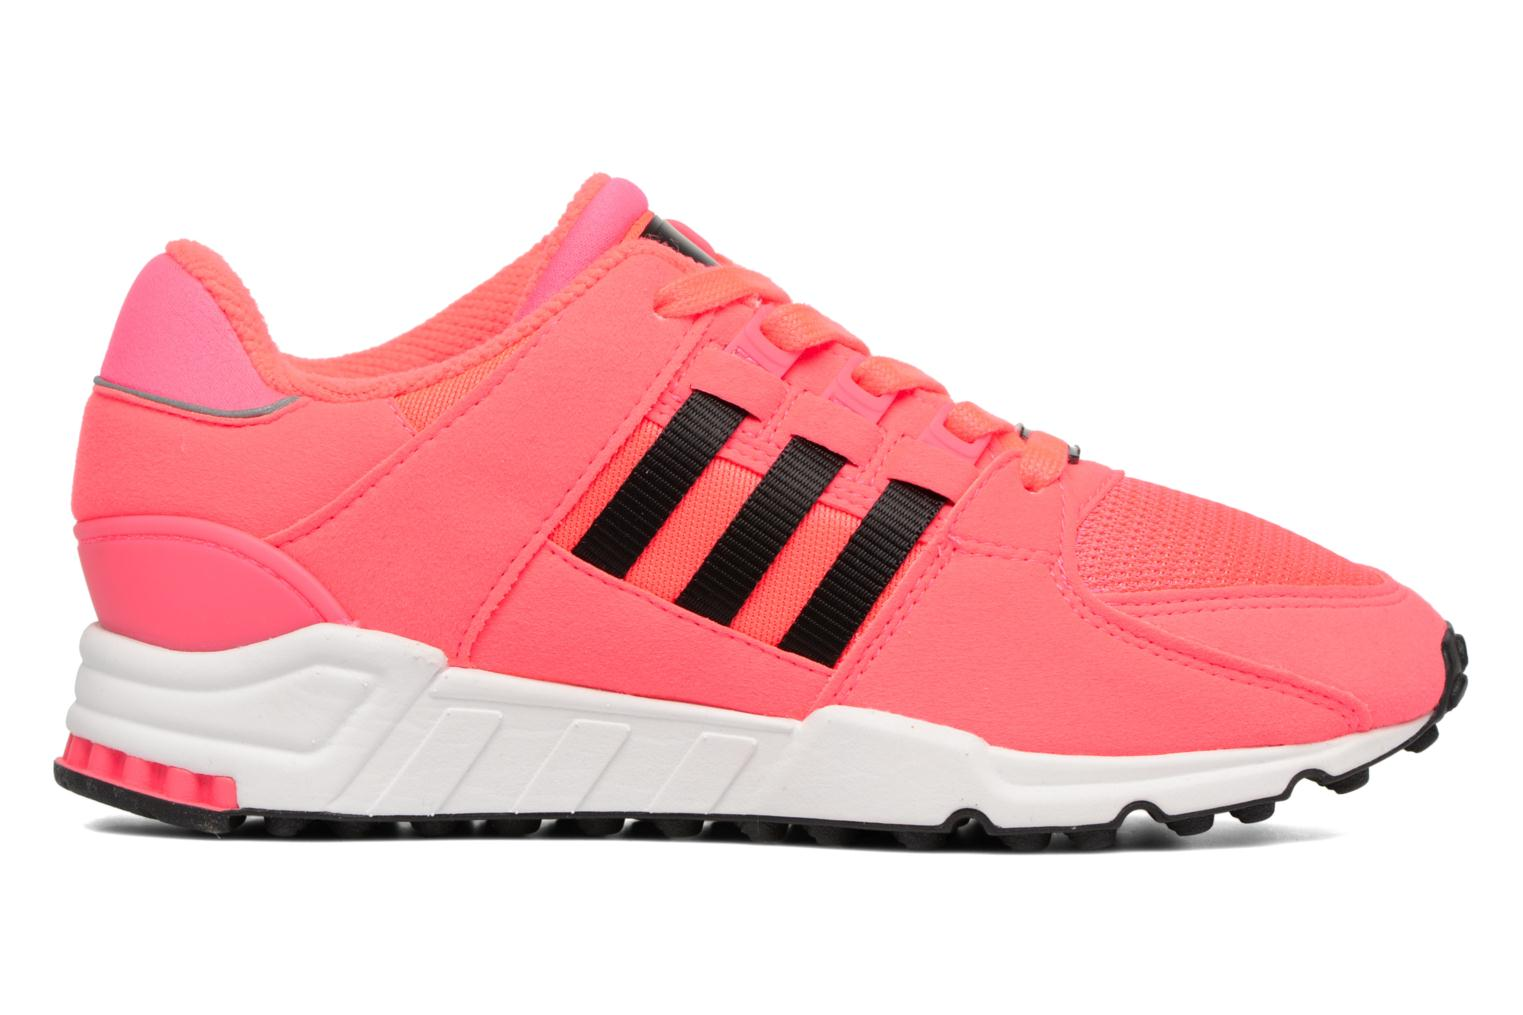 Adidas W Originals Support Turbo ftwbla Rf Eqt noiess kN80OPnwX